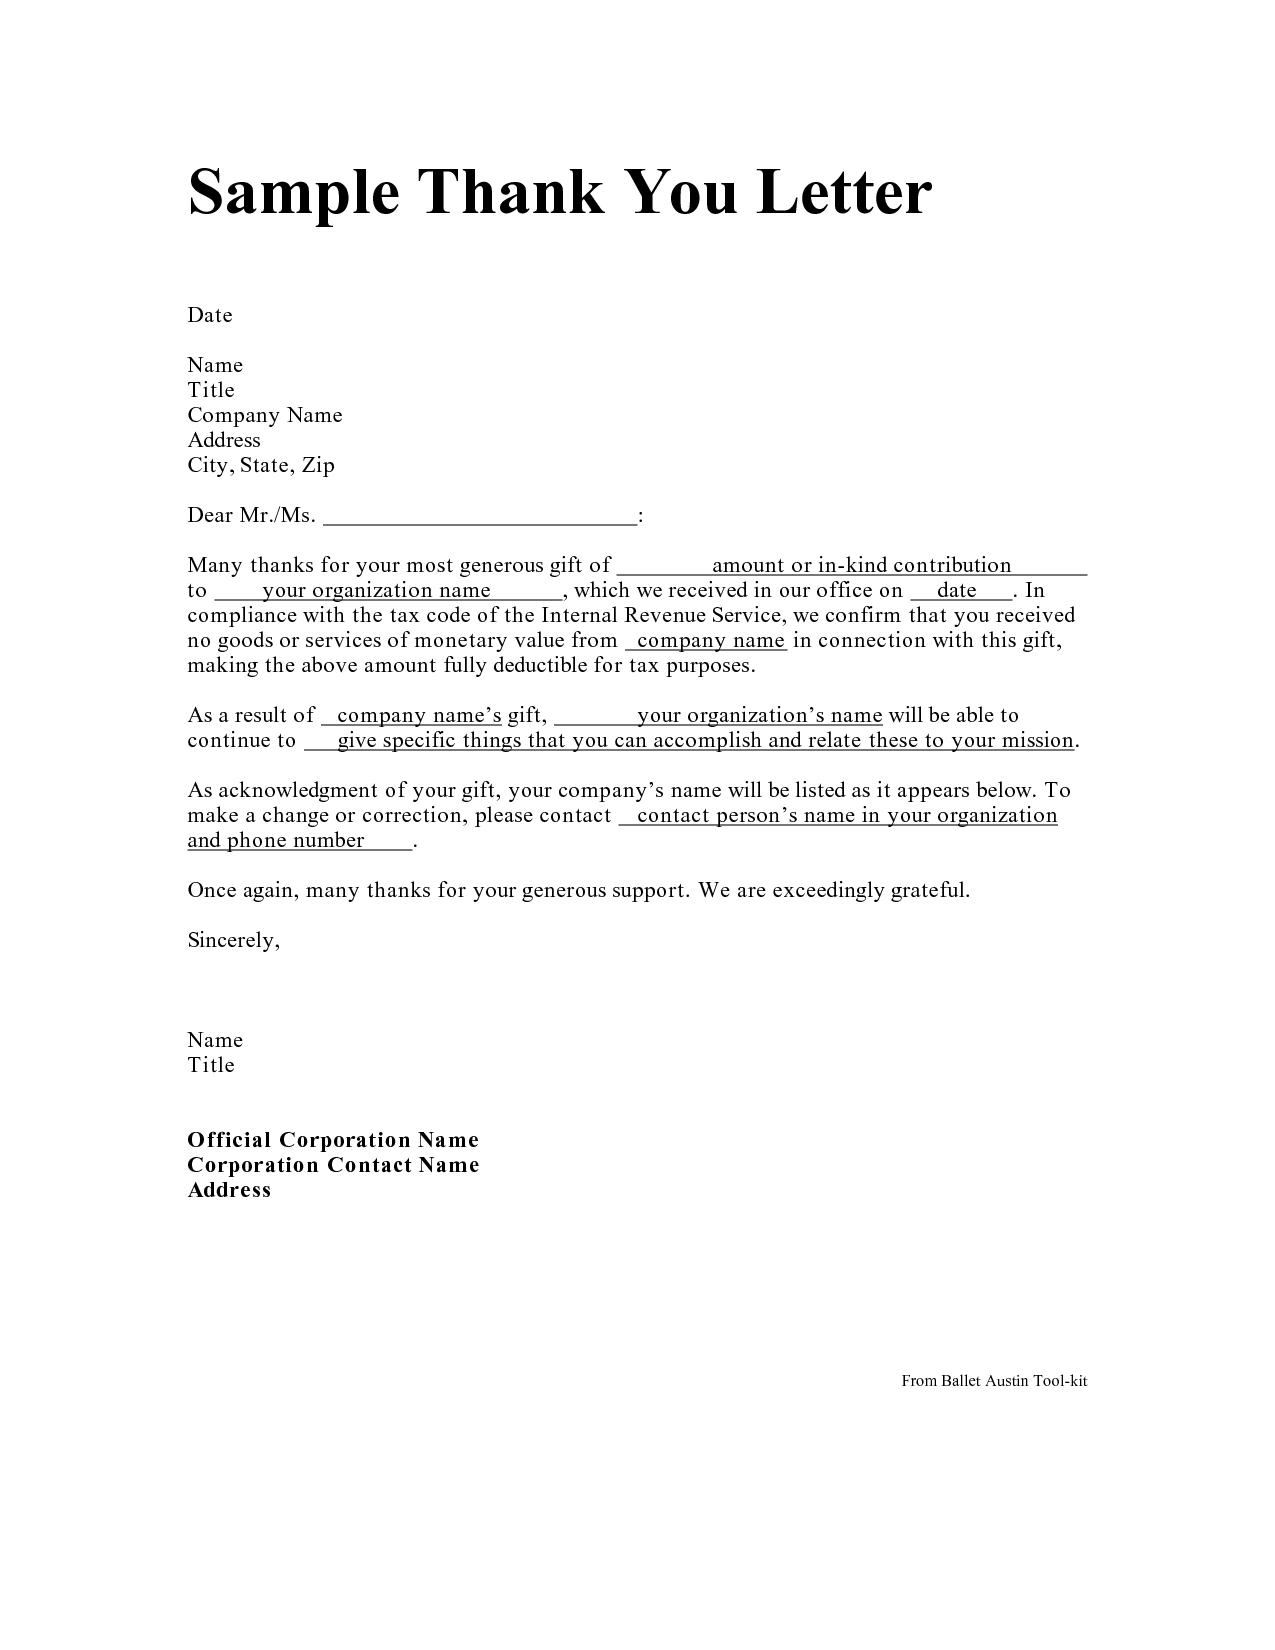 thank you letter template example-Personal Thank You Letter Personal Thank You Letter Samples Writing Thank You Notes 7-g